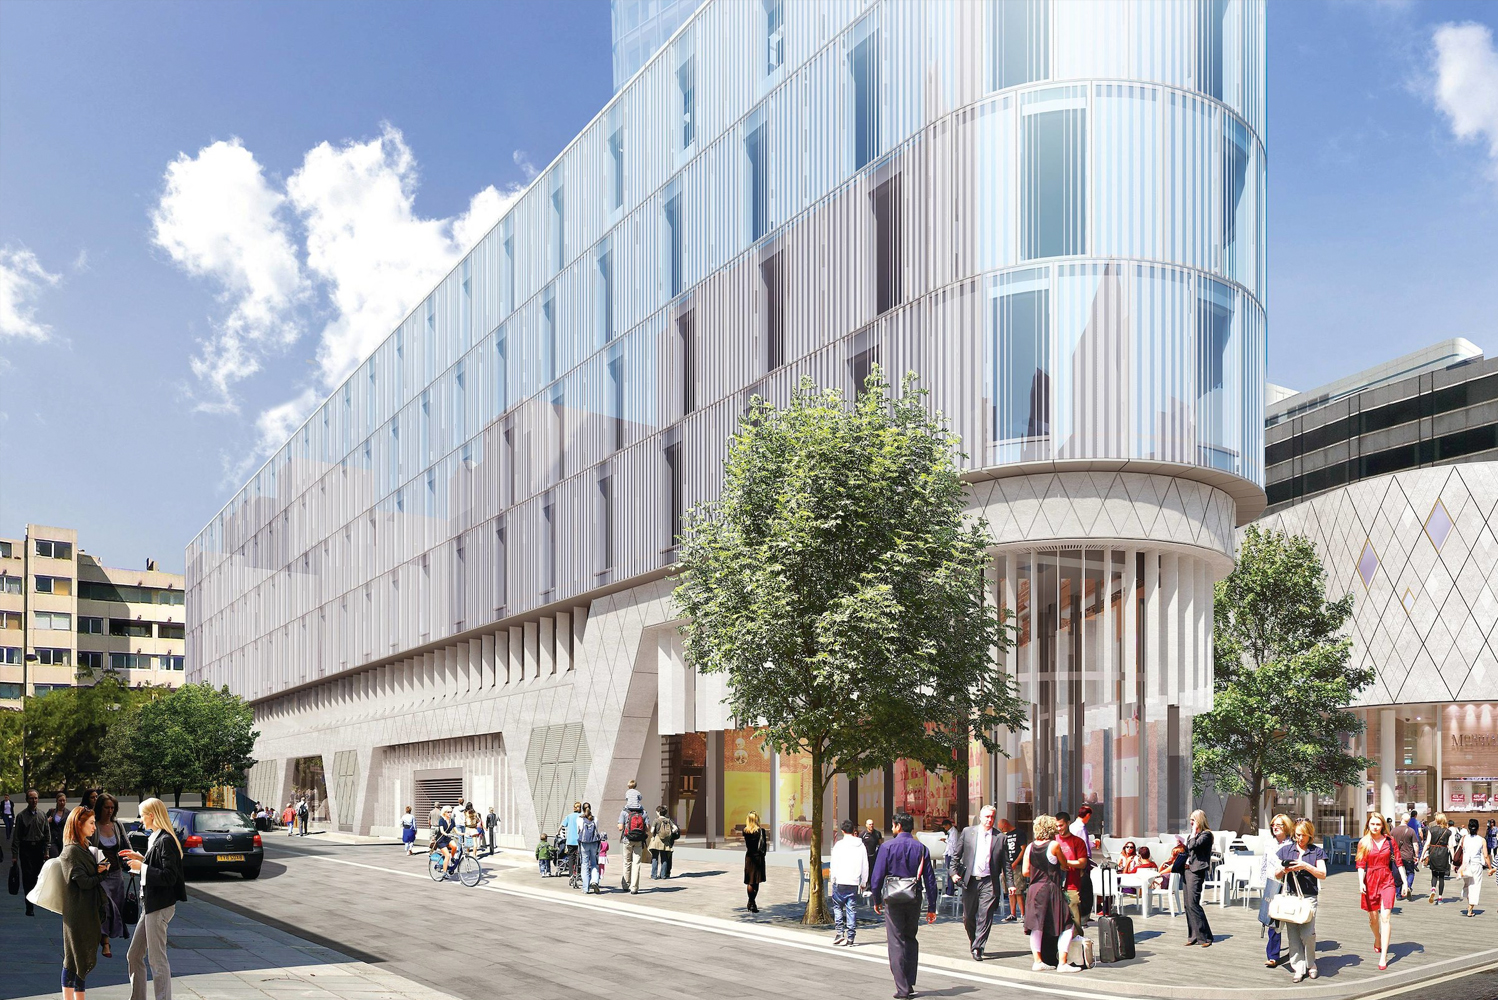 Autograph Collection Hotels, part of Marriott International, opened Bankside, a new hotel on the south bank of the River Thames.